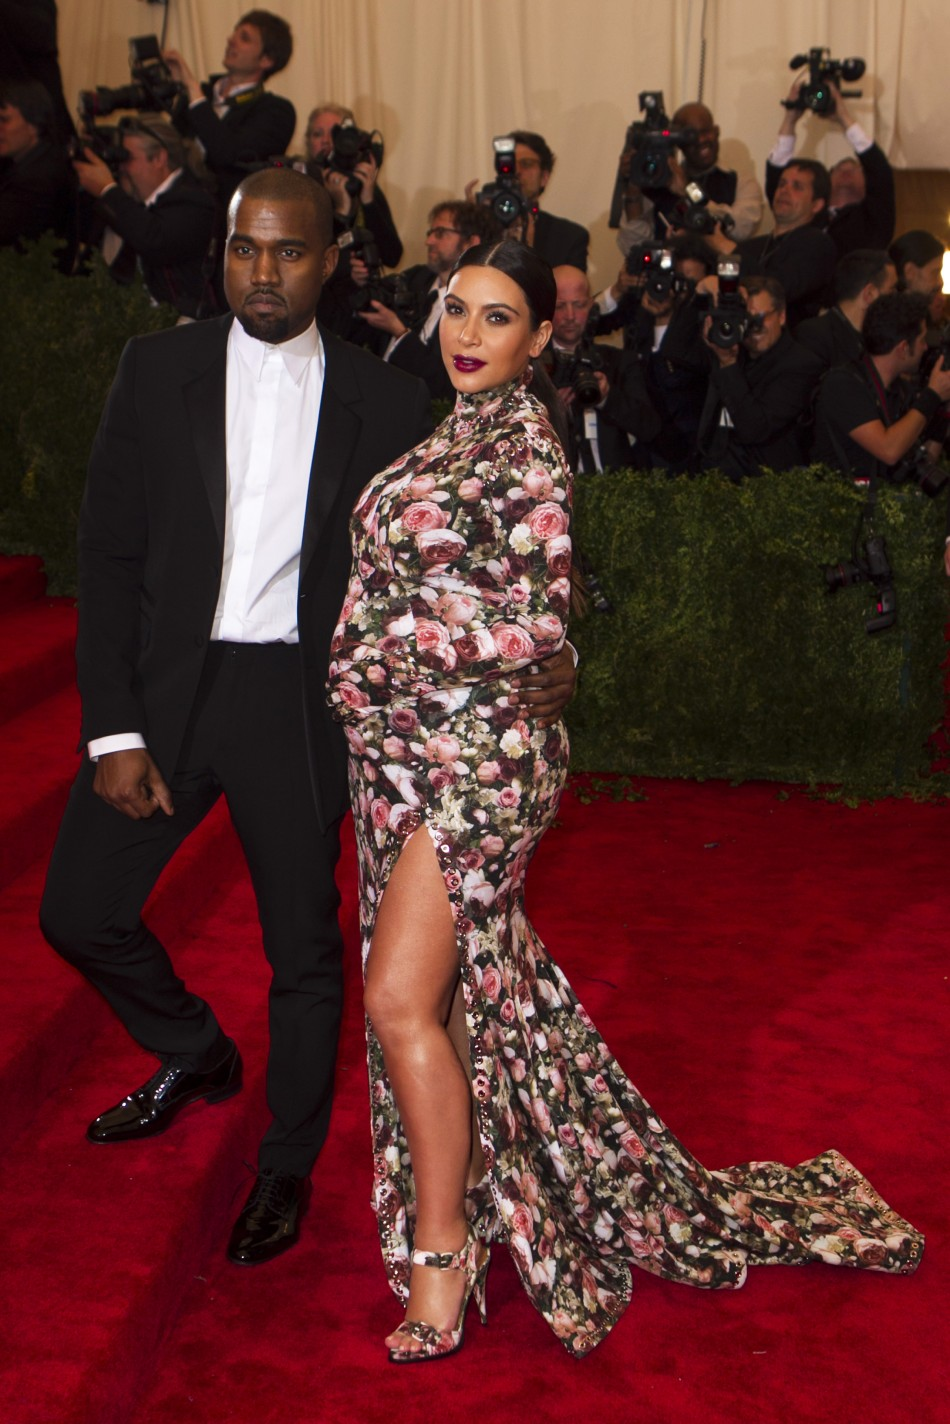 Singer Kanye West and reality television actress Kim Kardashian arrive at the Metropolitan Museum of Art Costume Institute Benefit celebrating the opening of PUNK Chaos to Couture in New York